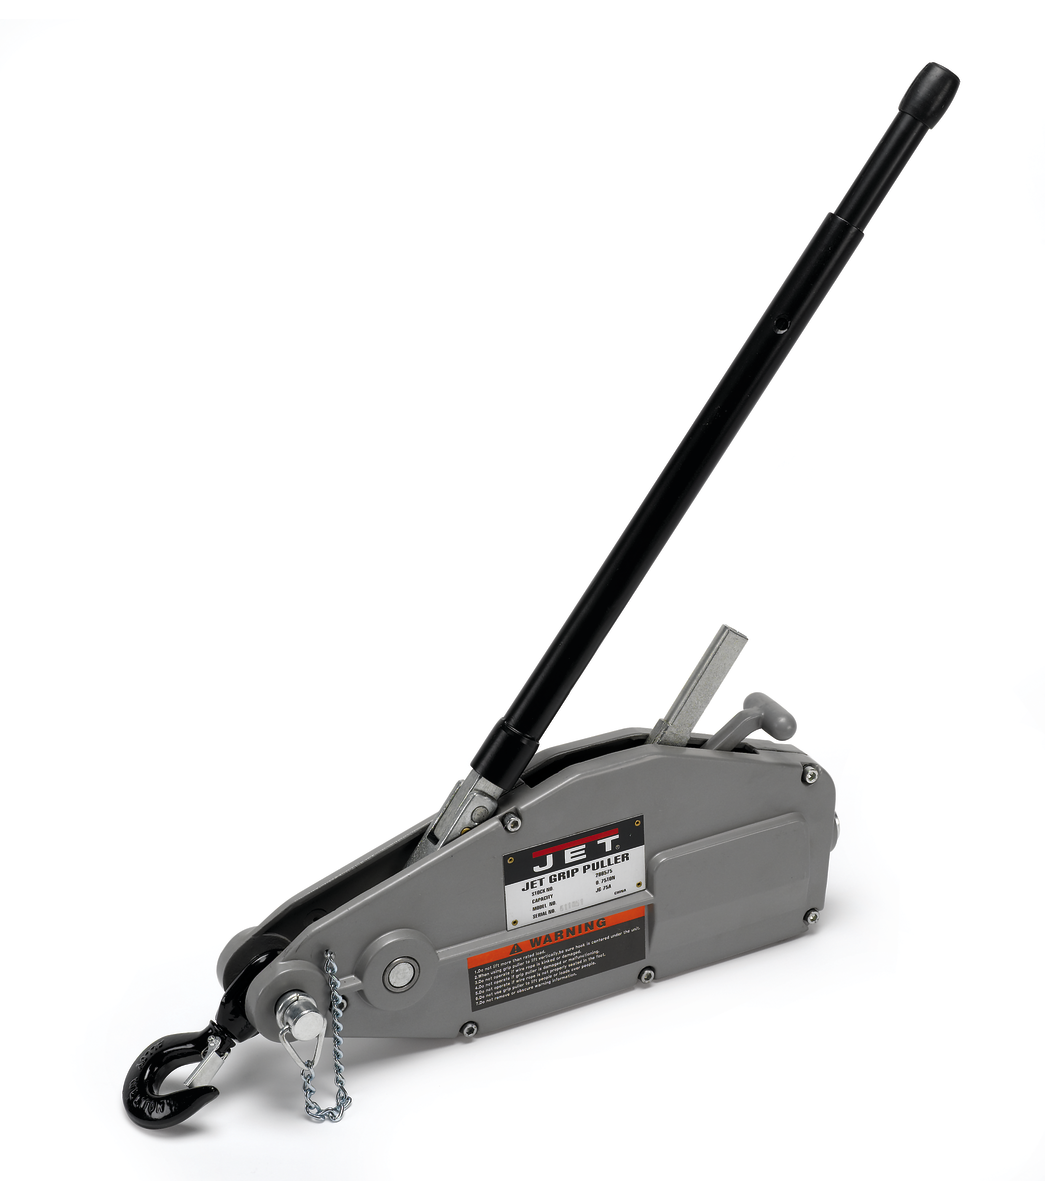 JG-150A, 1-1/2 Ton Grip Puller with Cable